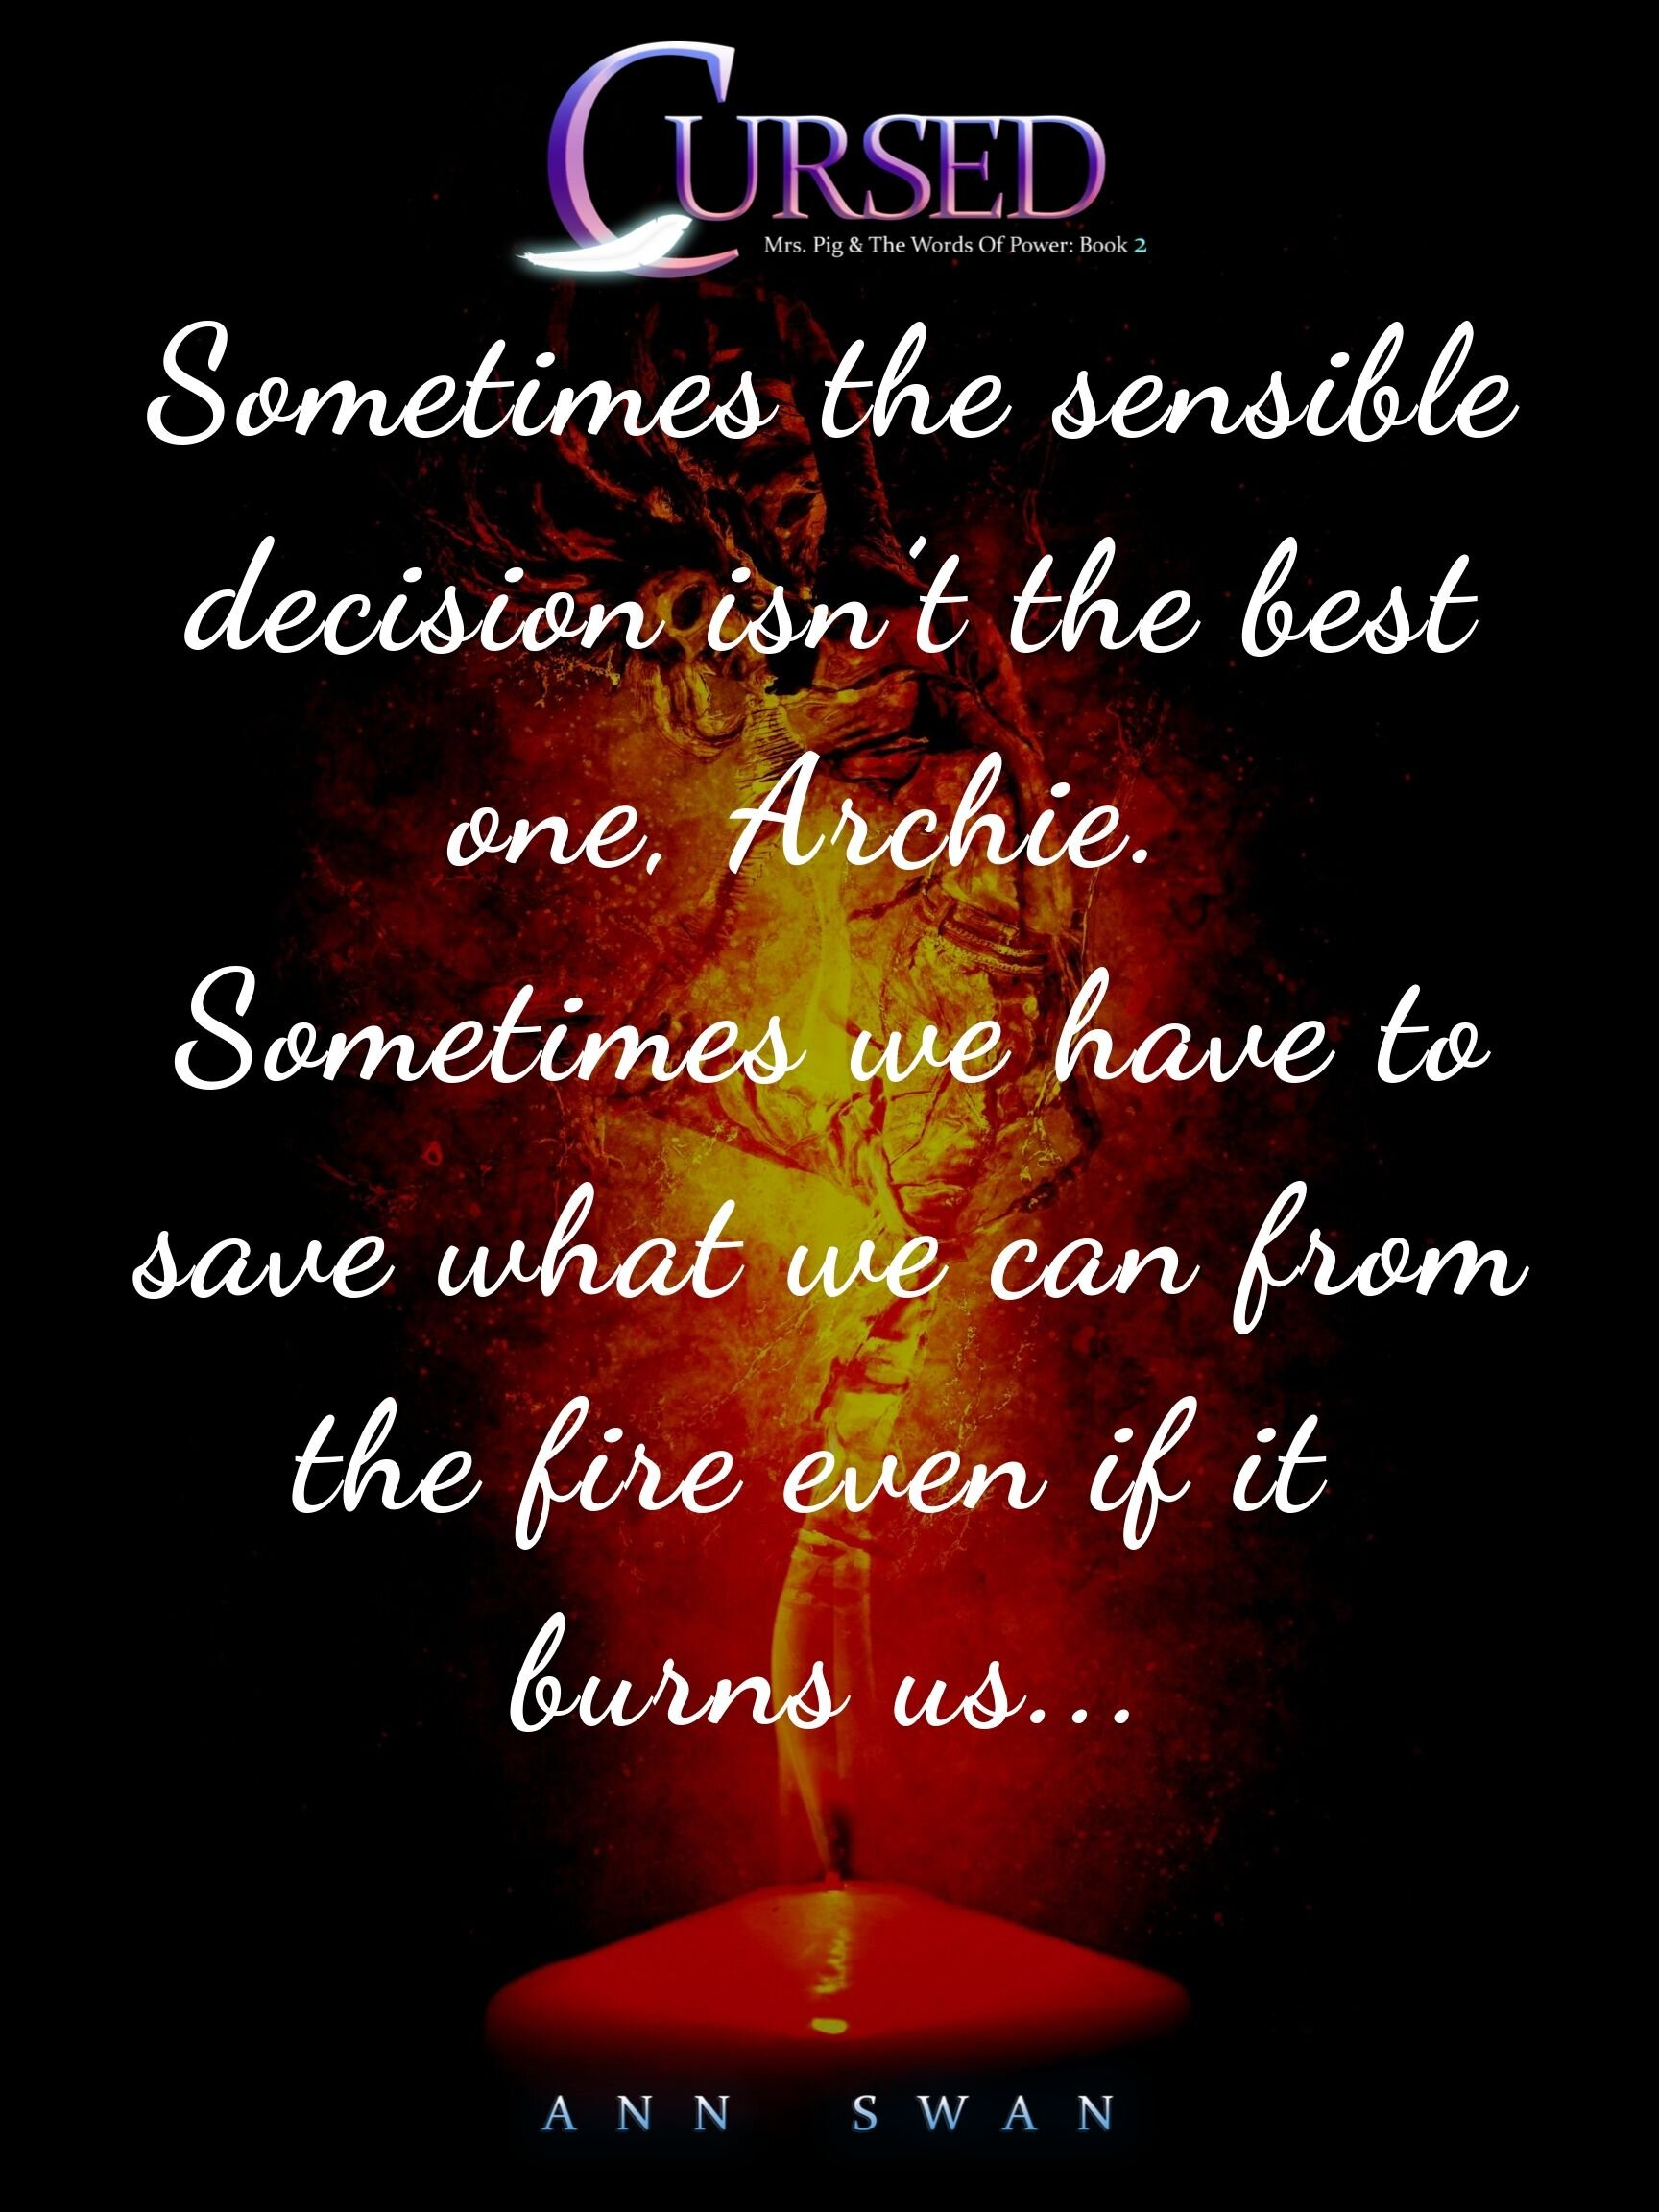 Sometimes the sensible decision isn't the best one, Archie. Sometimes we have to save what we can from the fire even if it burns us....jpg